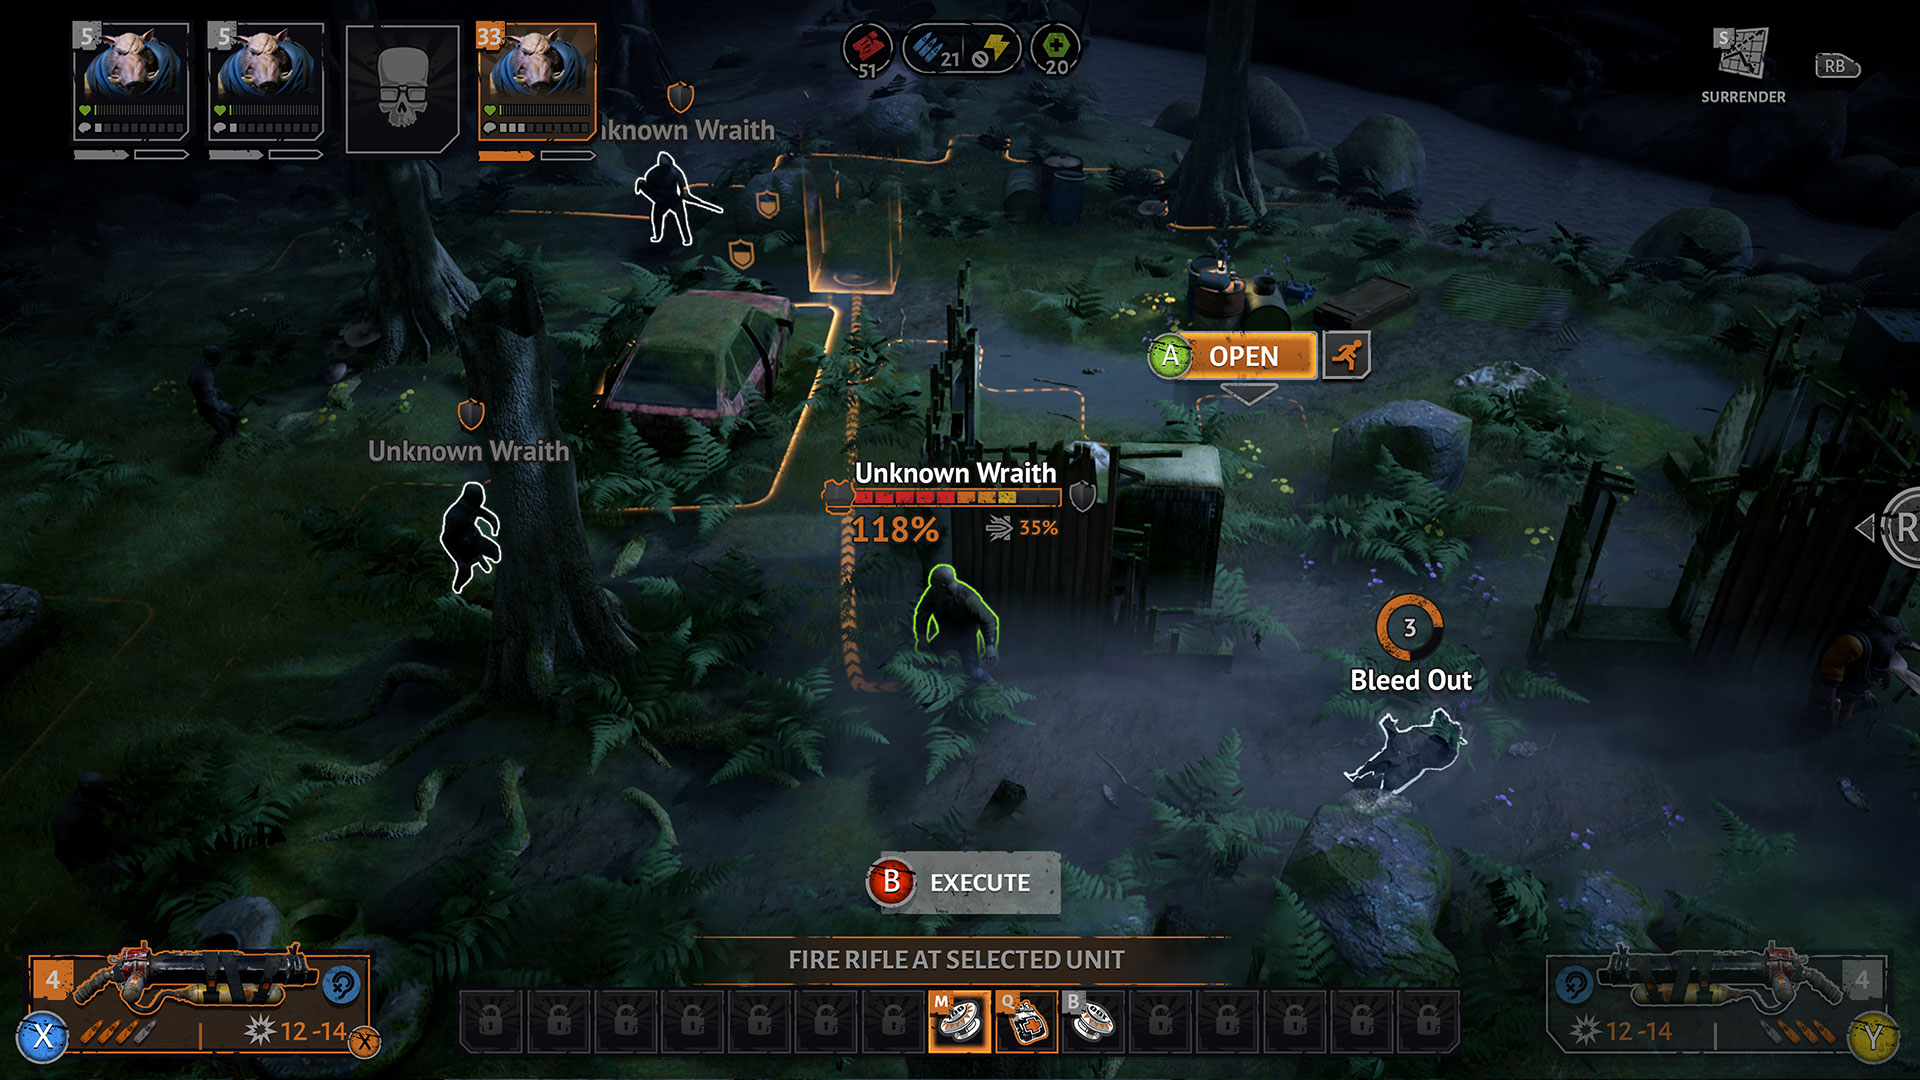 funcom-ui-gameinterface-gameart-roadtoeden-ps4-xbox-tactical-adventure-game-xcom-turn-based-gameux-game-experience-design19